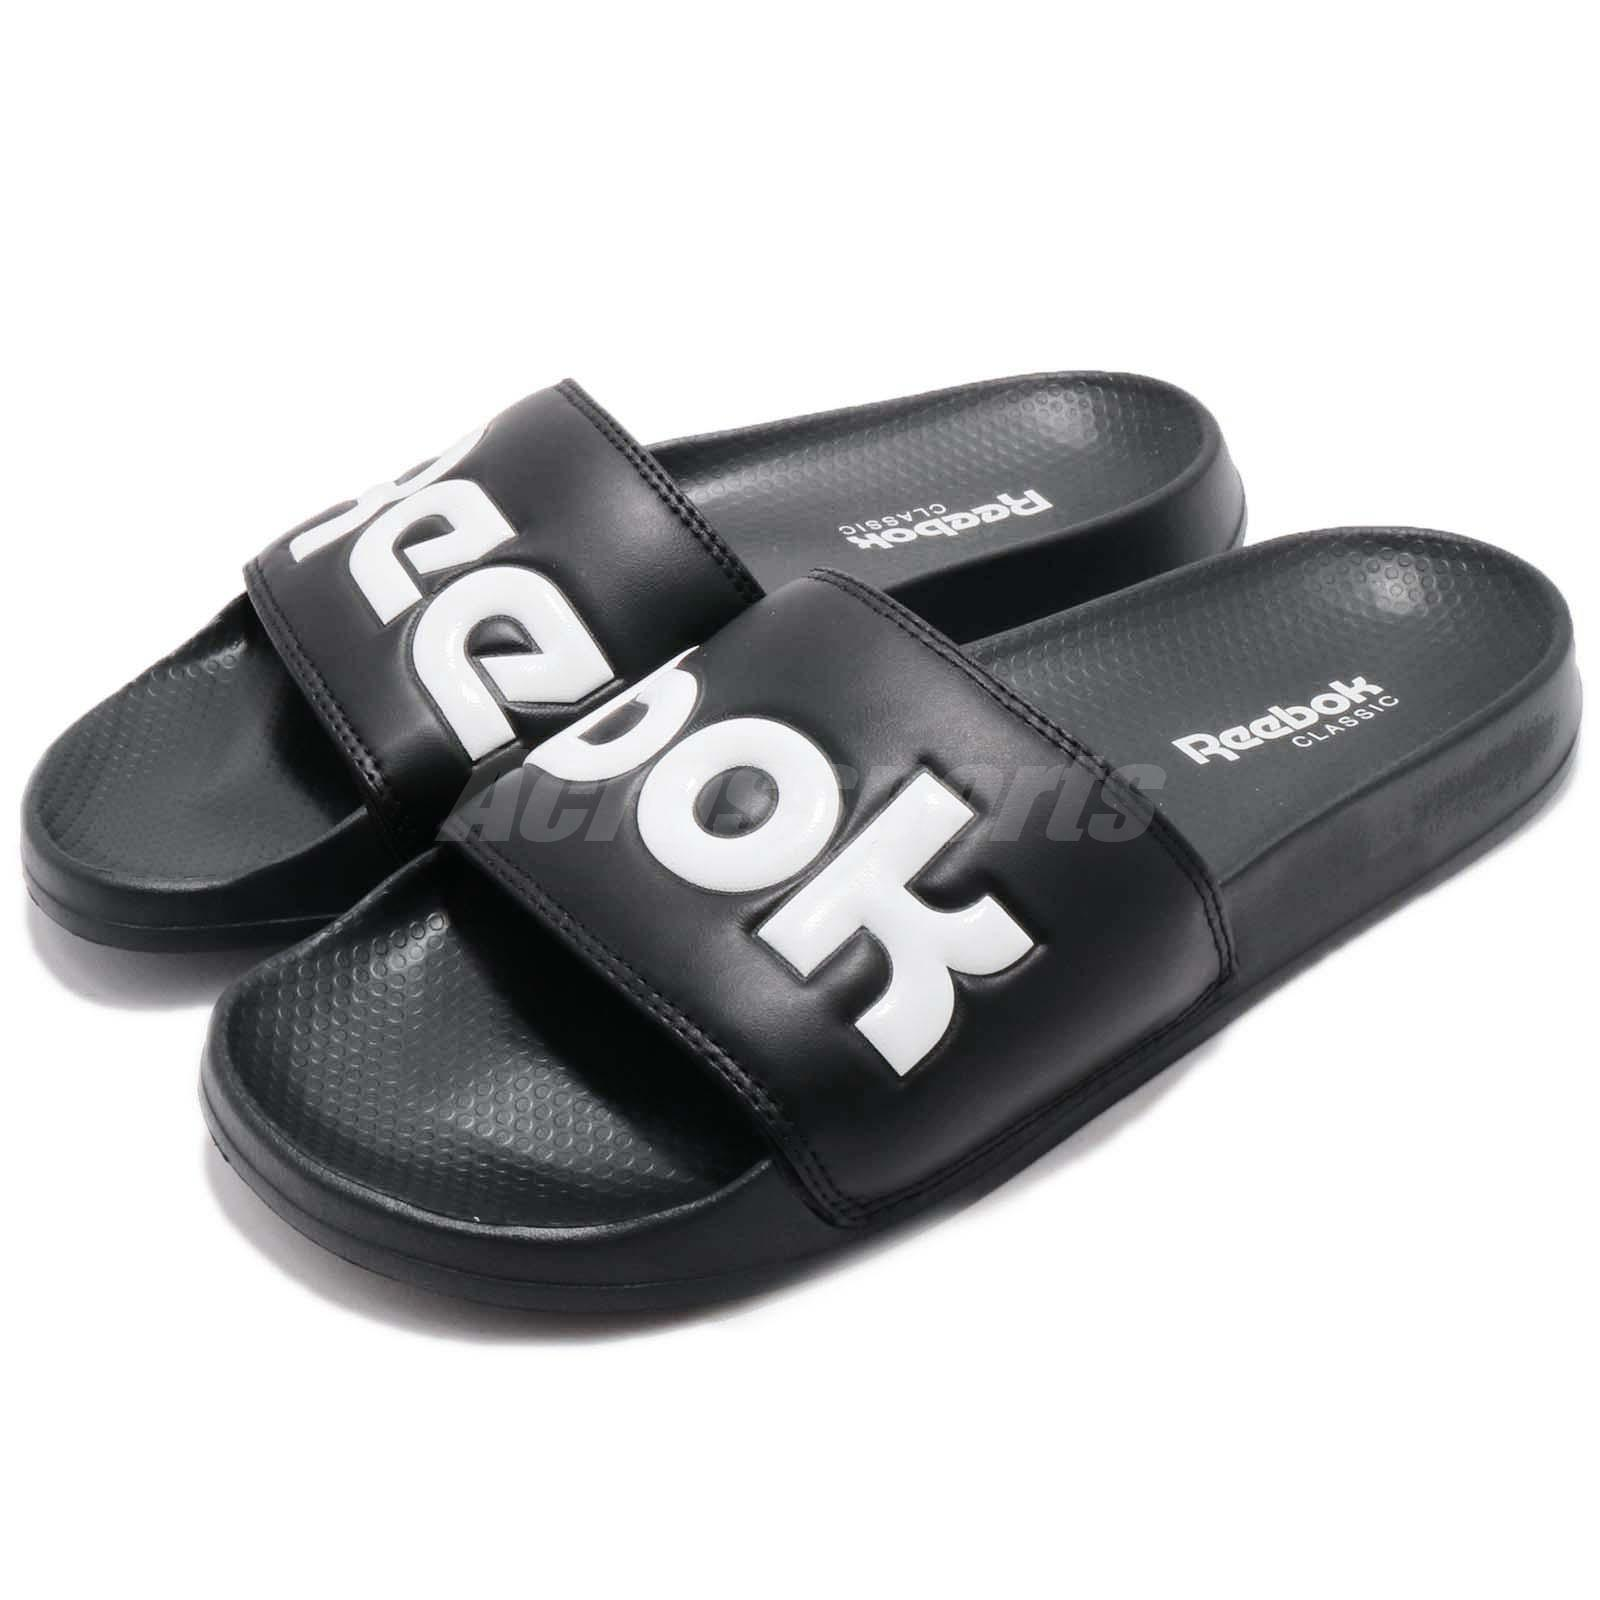 reebok shoes slippers - 52% OFF